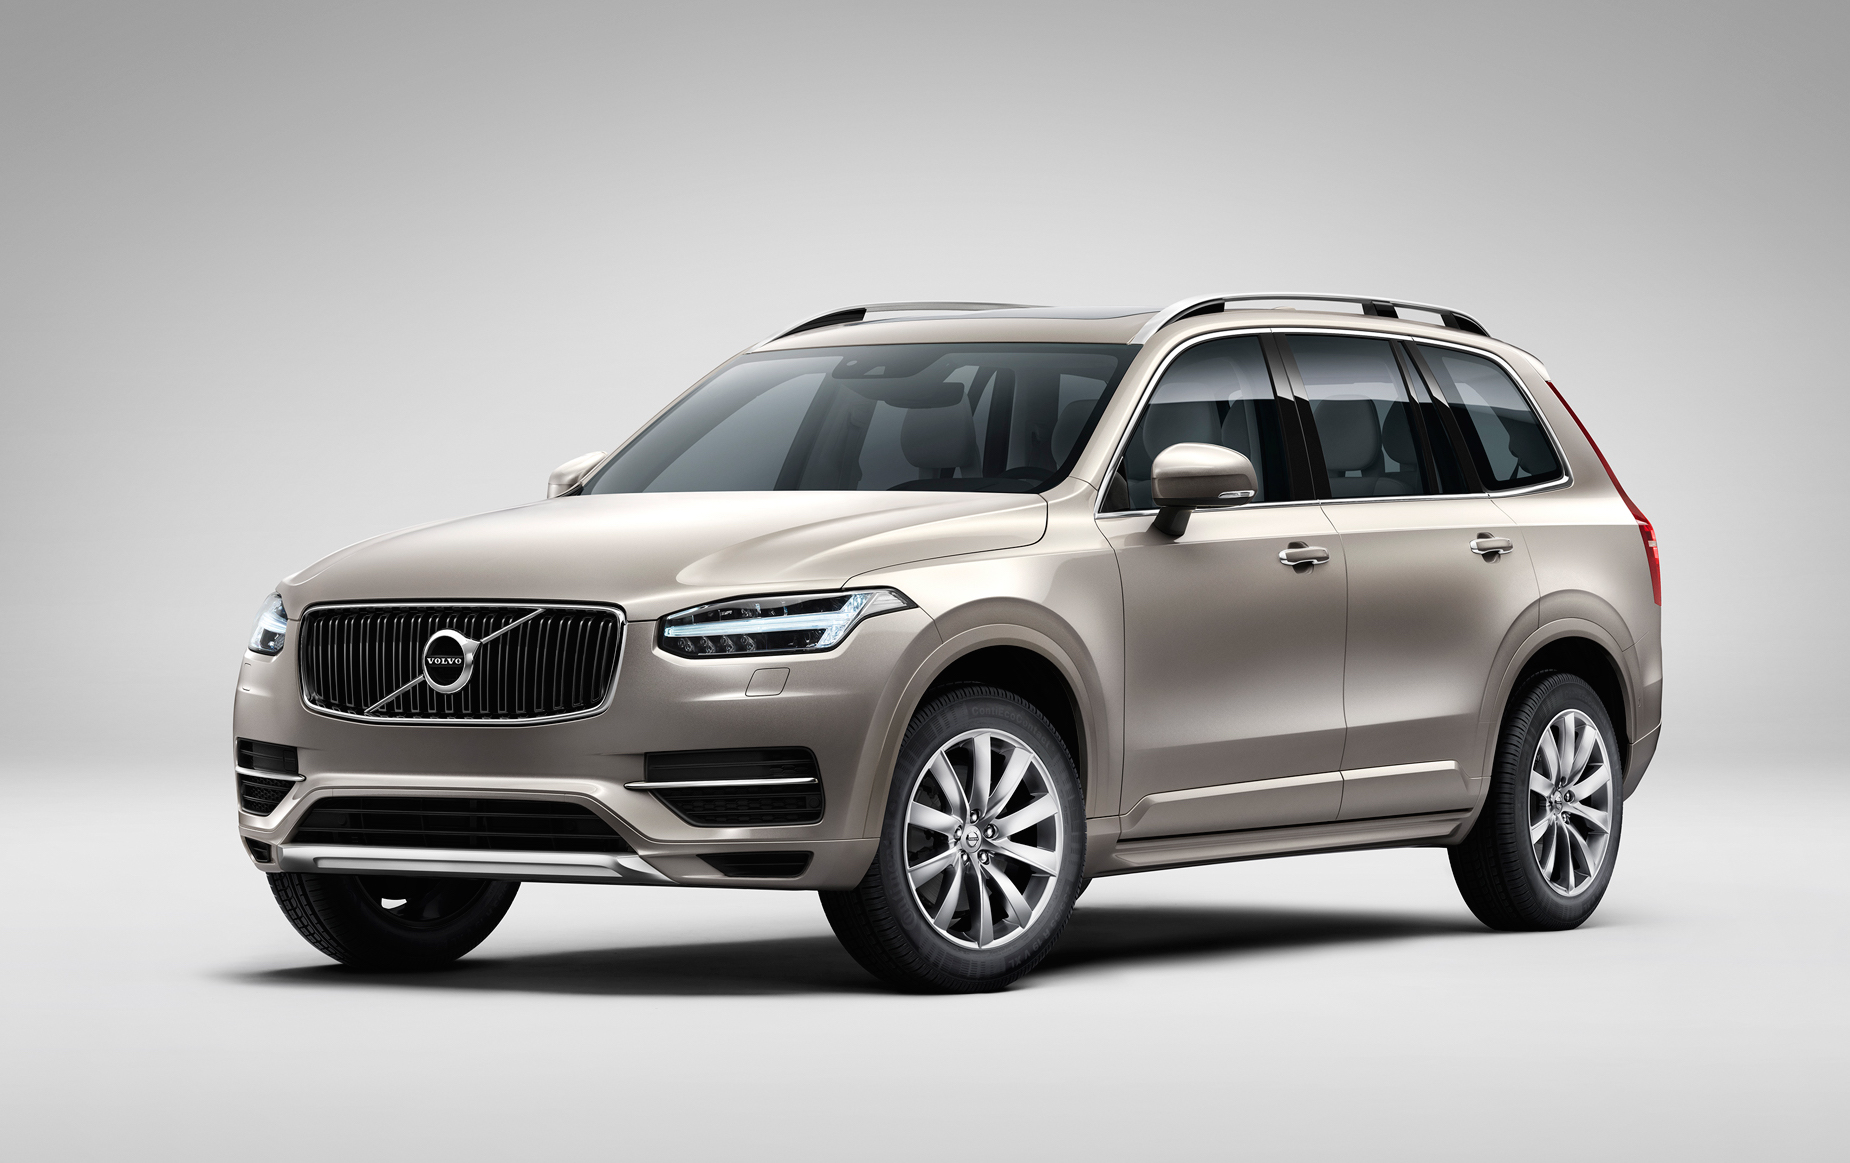 Cars for big families: The 2016 Volvo XC90 is gorgeous, roomy, and fits 3 child safety seats in the second row alone